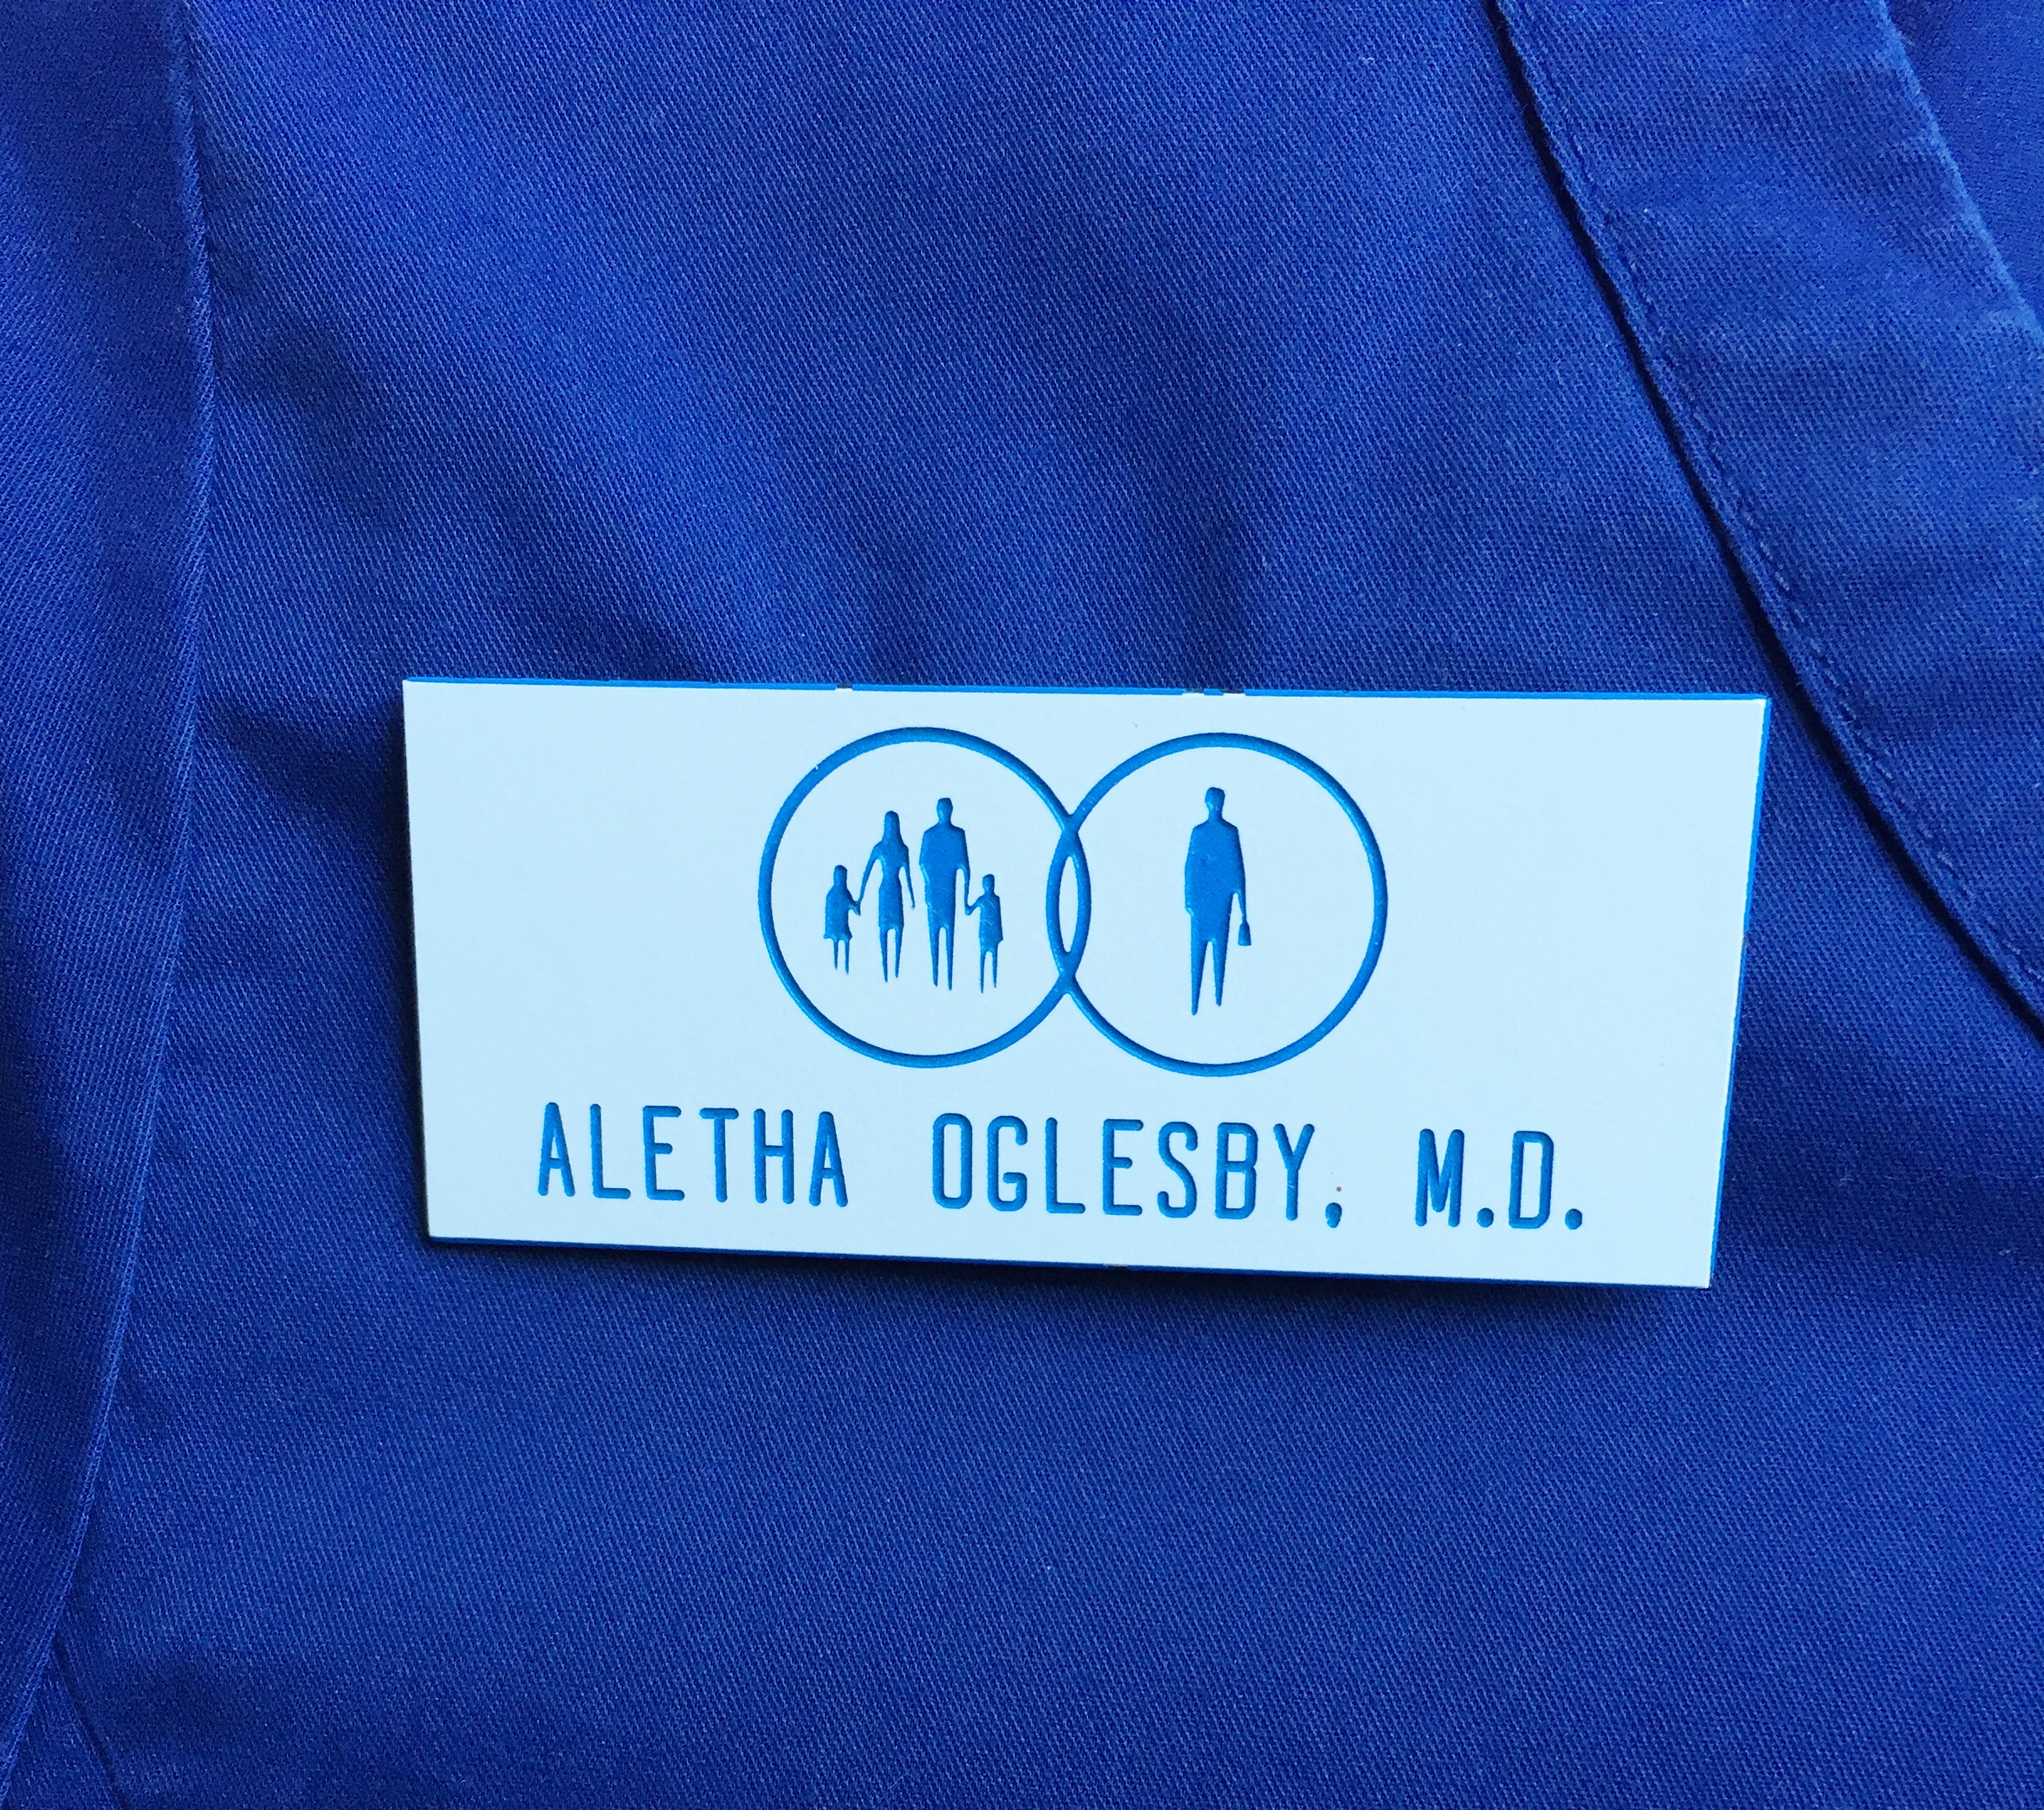 a nametag reading ALETHA OGLESBY, M.D.